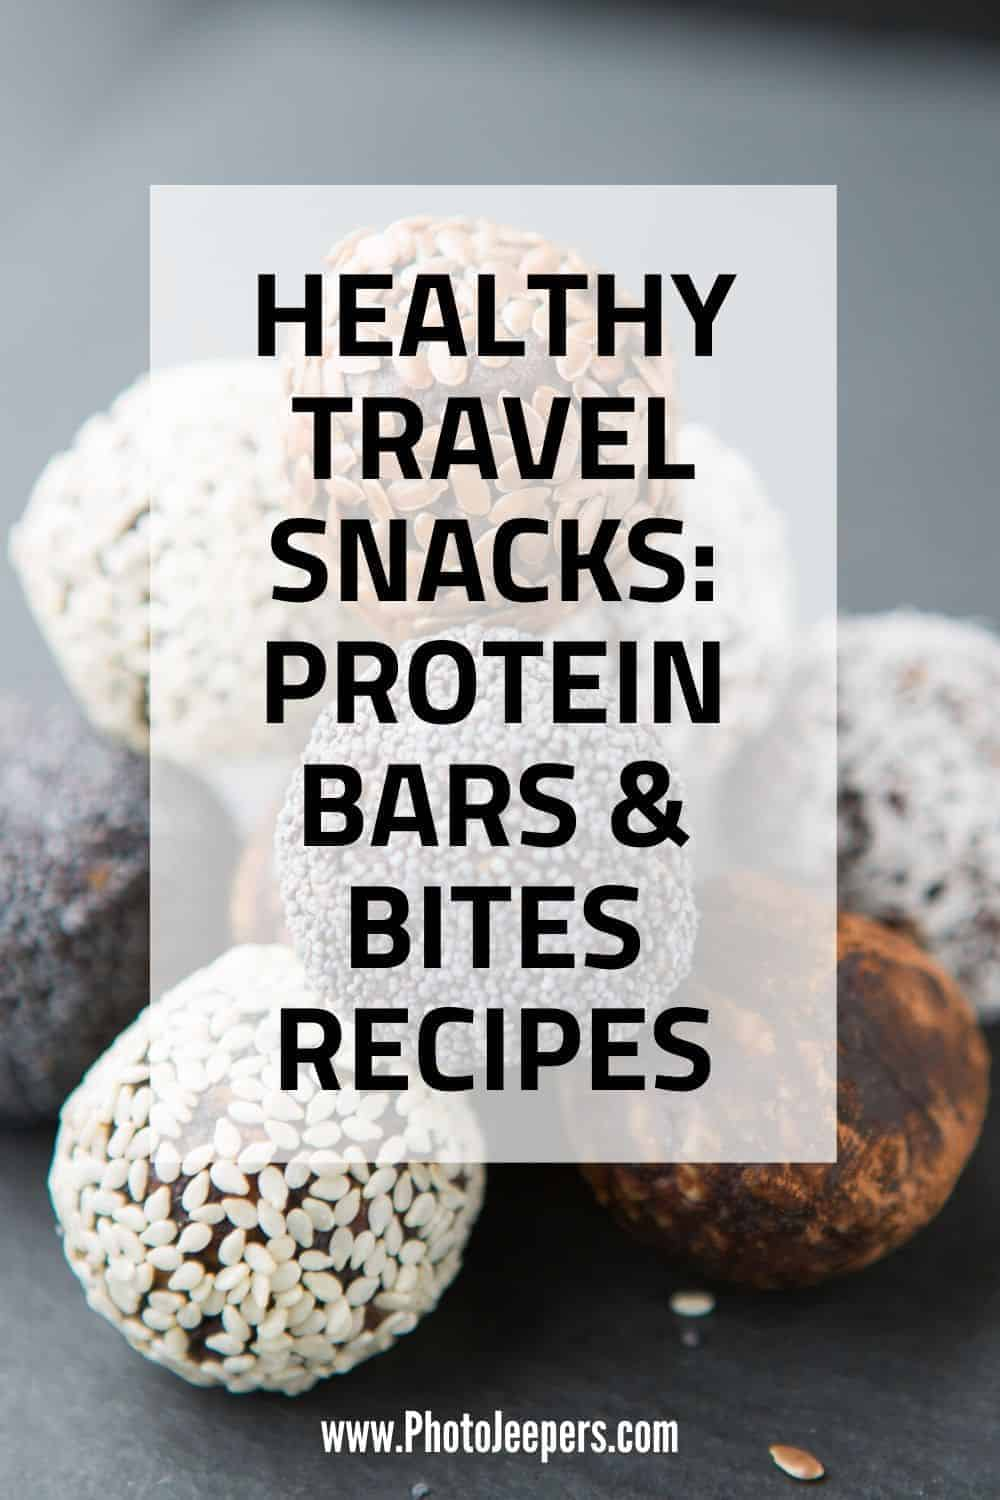 Healthy travel snacks are important when traveling or doing outdoor activities. Here's a list of yummy homemade energy bars and bites that are easy to make, easy to transport and easy to eat on the go! #healthysnack #travelsnack #roadtripsnack #photojeepers